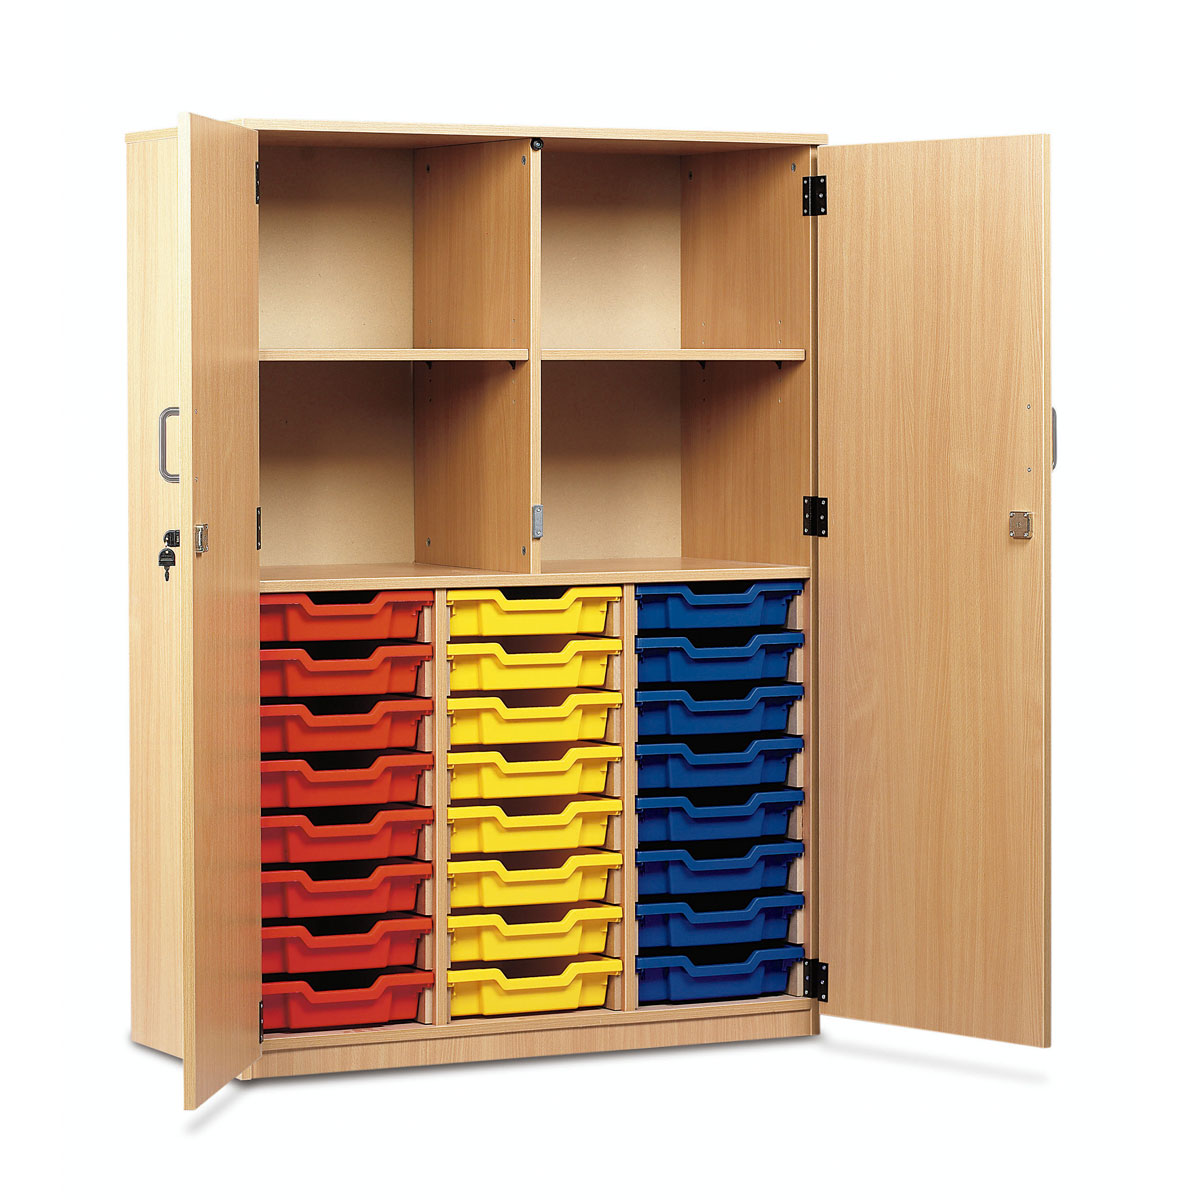 Buy Cupboard Buy 24 Shallow Tray Cupboard Full Locking Doors